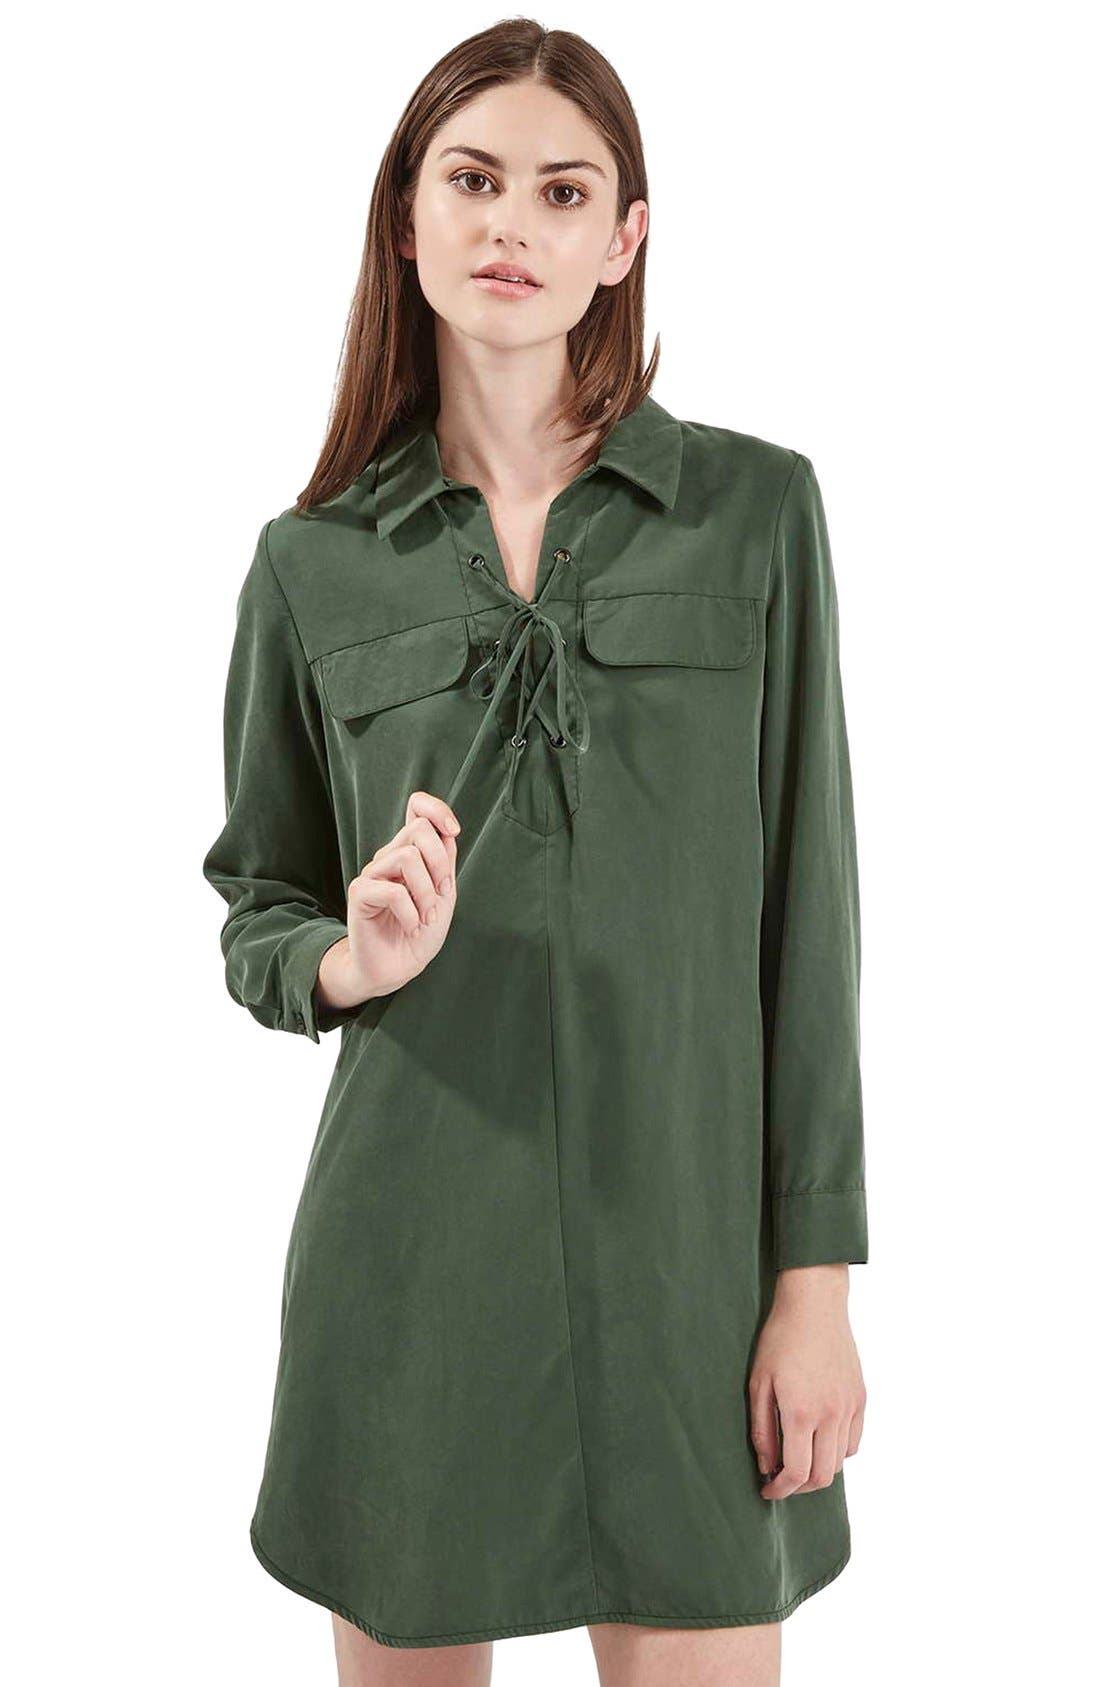 Alternate Image 1 Selected - Topshop Lace-Up Oversize Shirtdress